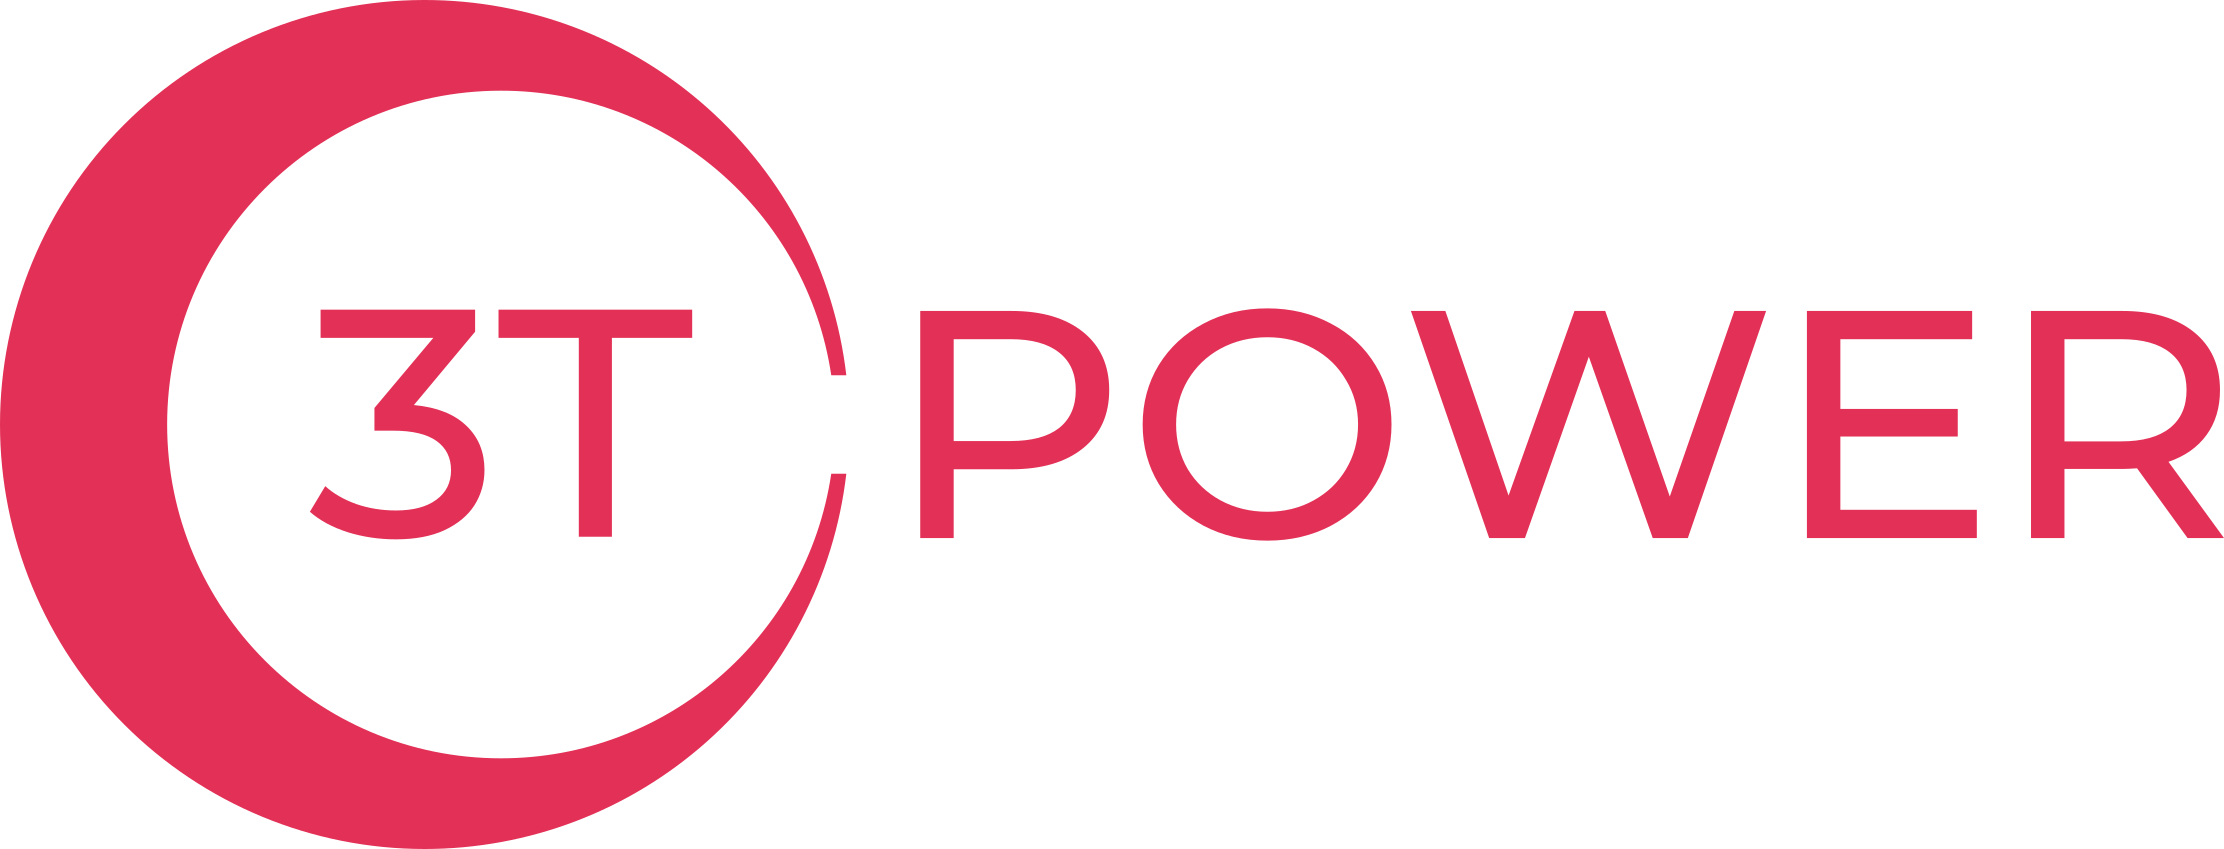 3T Power logo